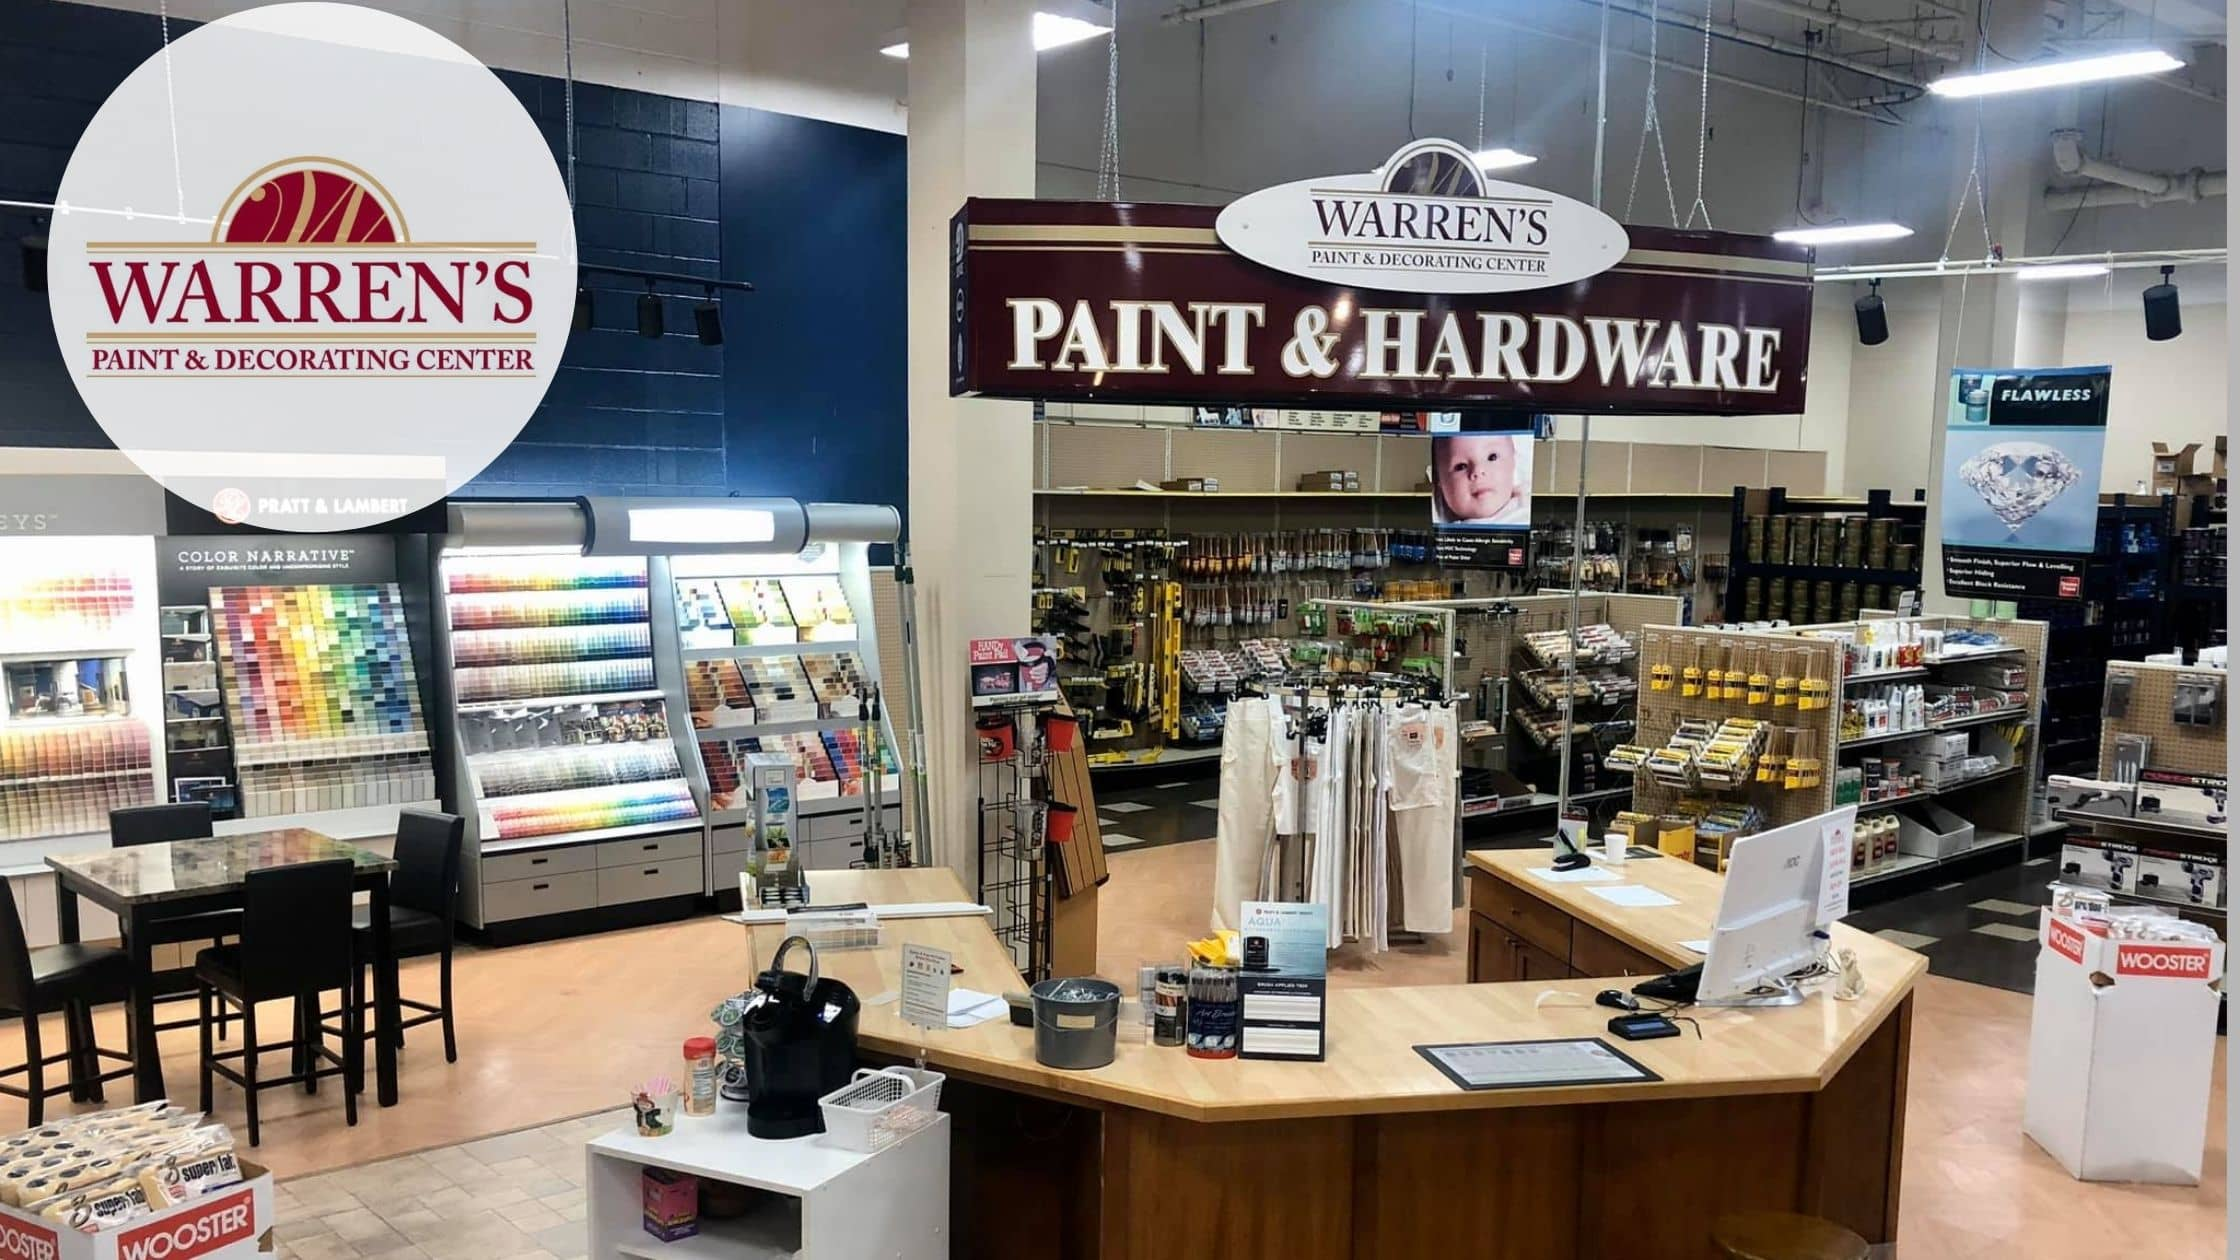 Warrens Paint and Decorating Center